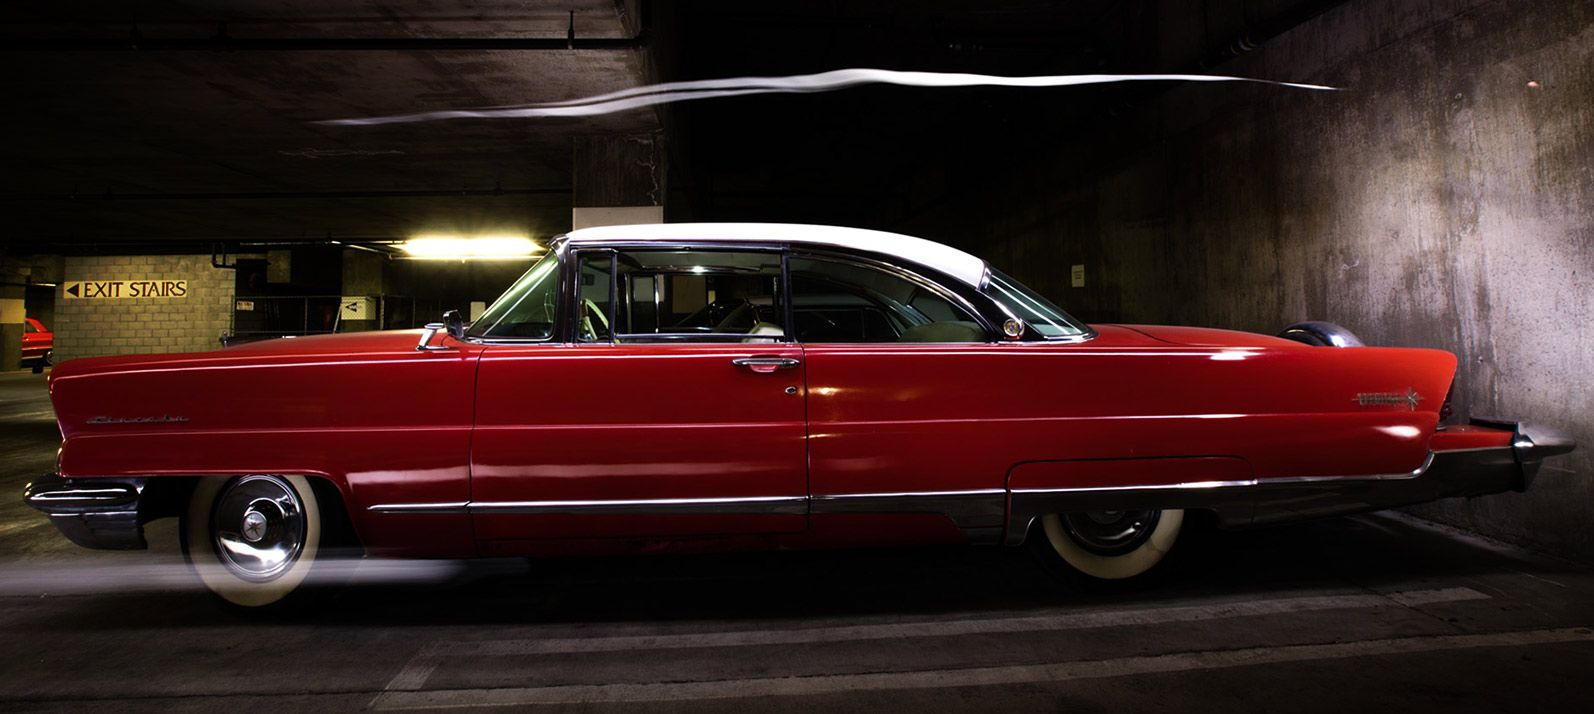 Vintage Car Collector - California | Cars and transport, Baby ...